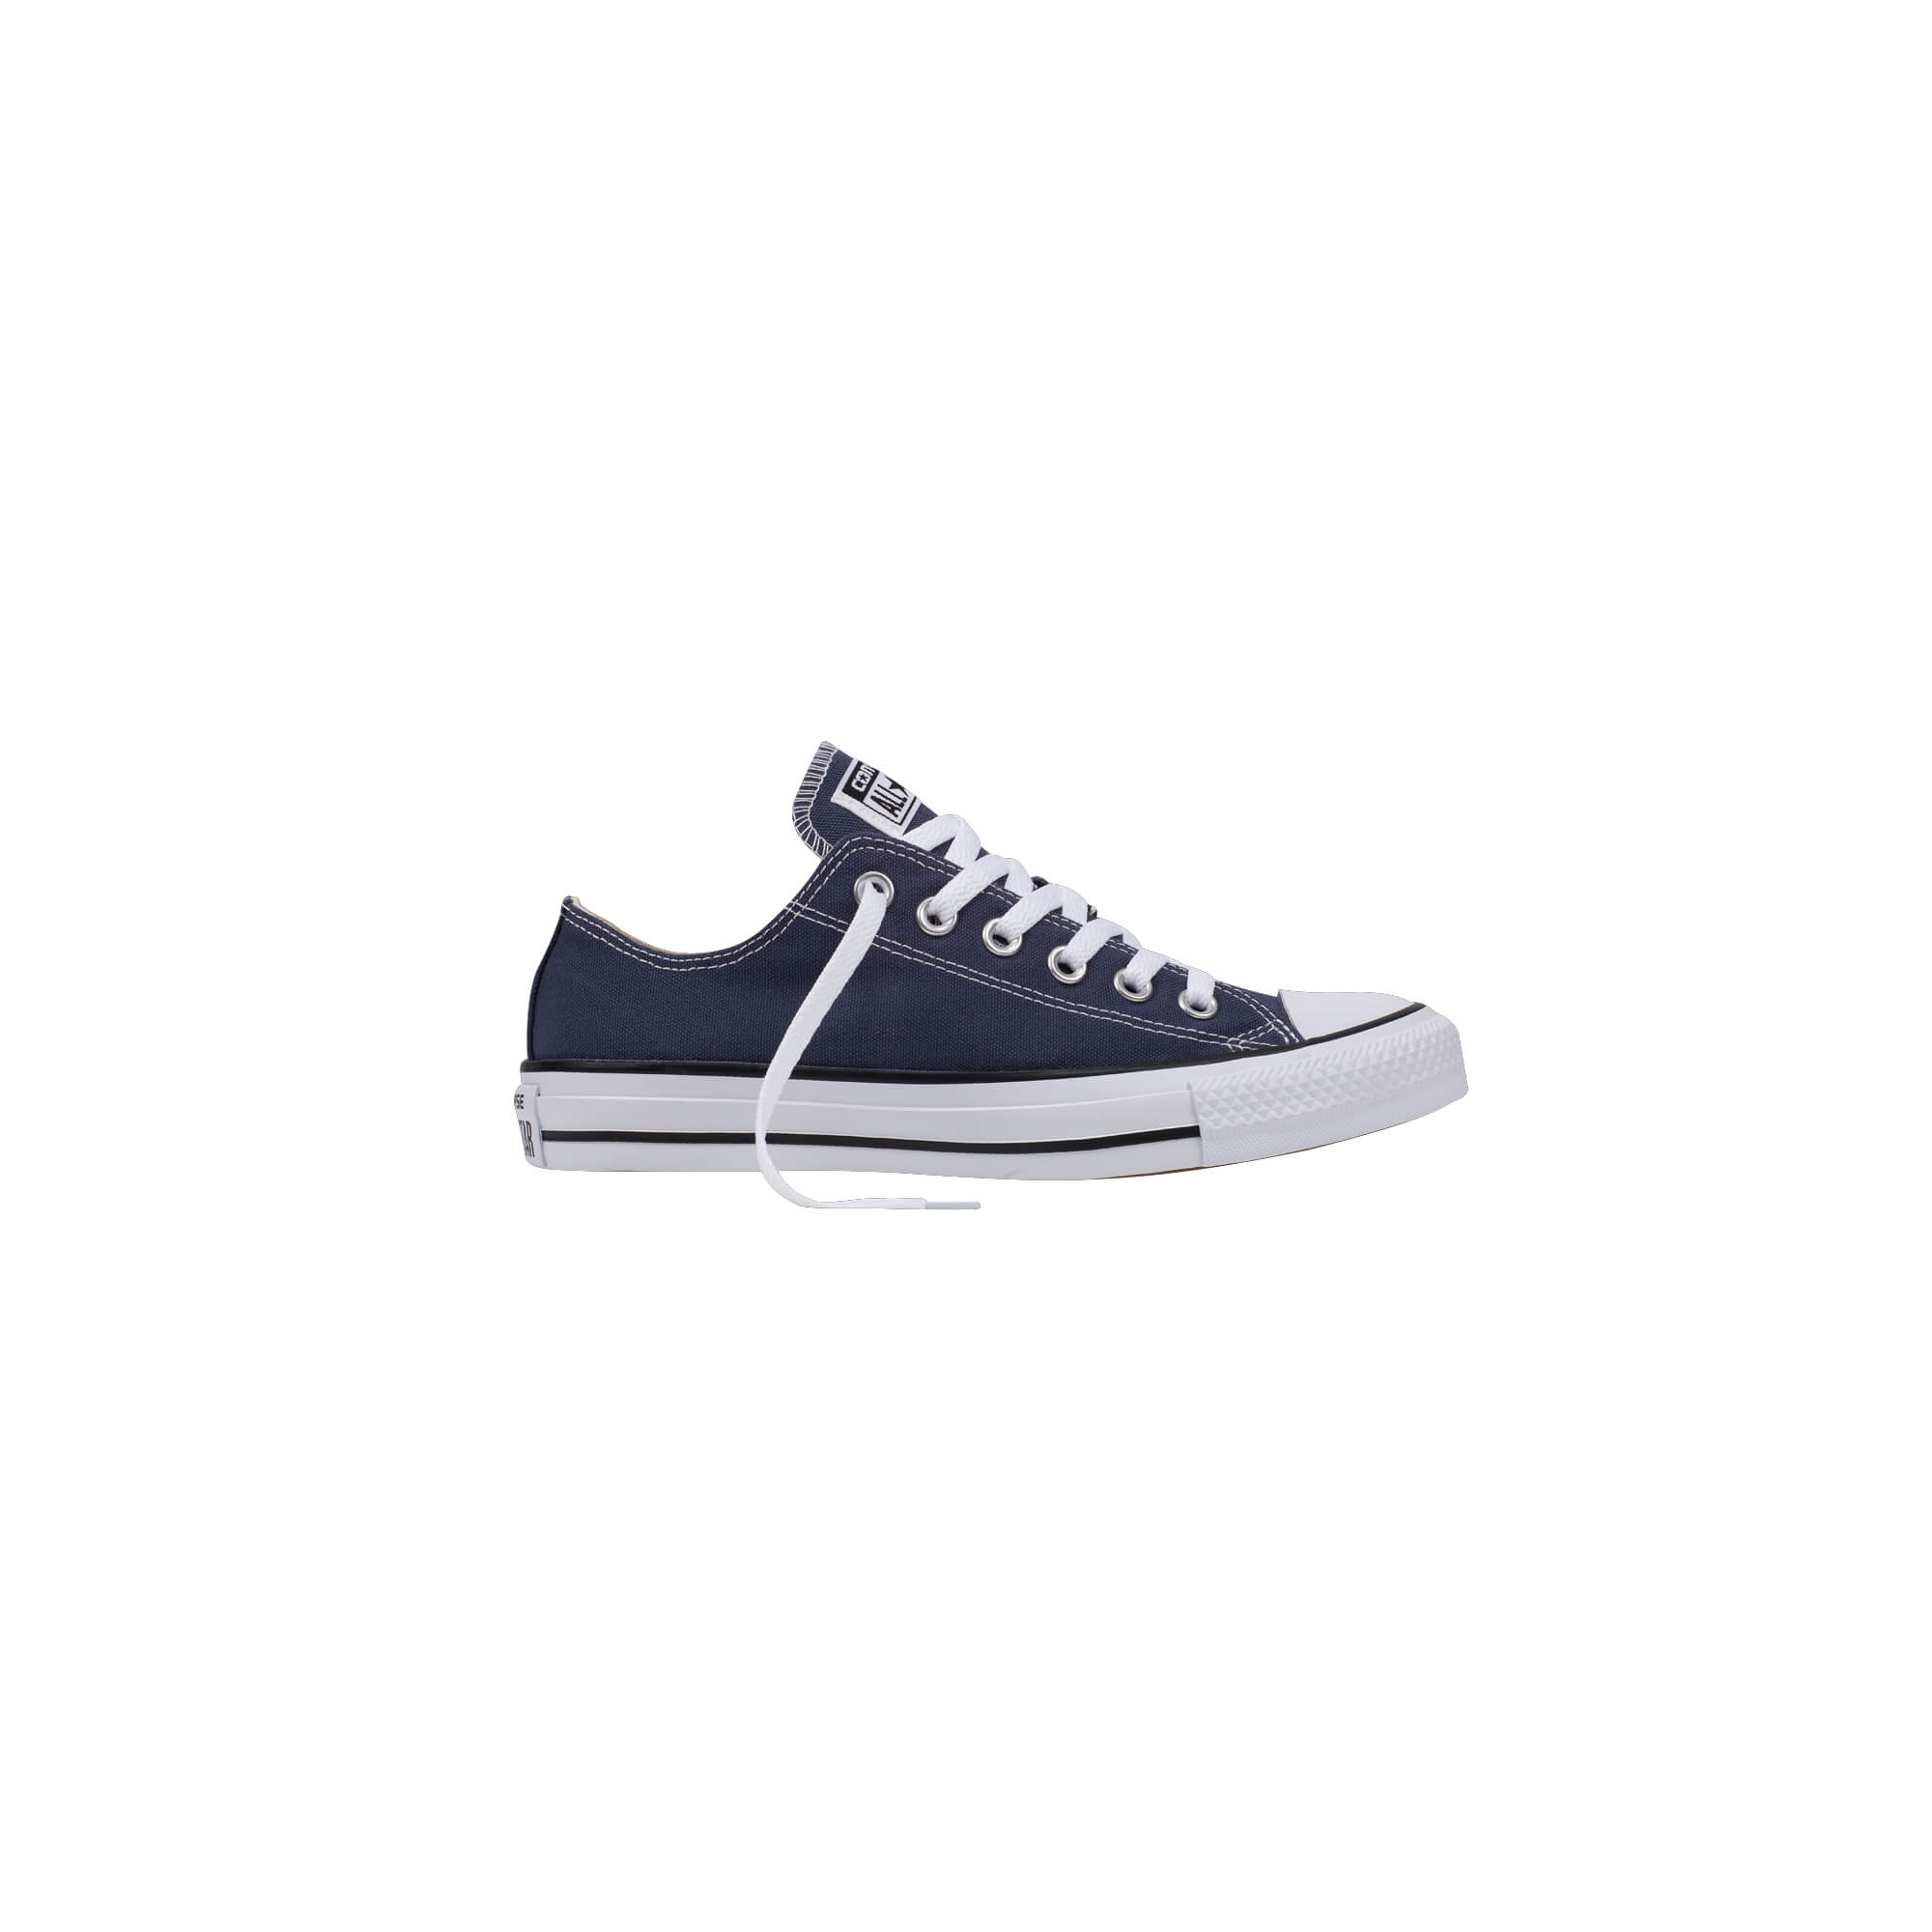 Converse Chuck Taylor All Star, vel. 45